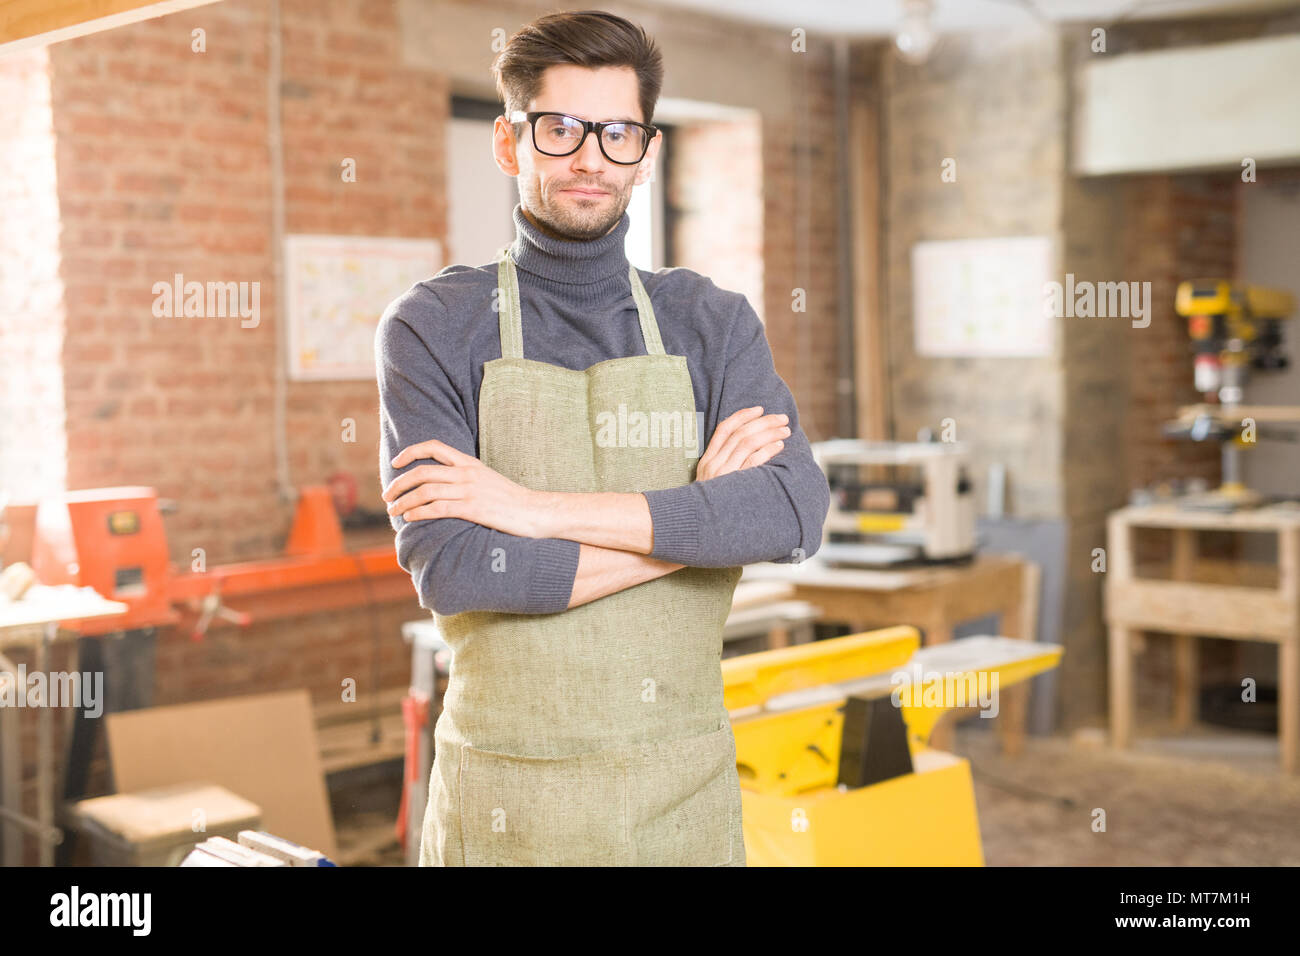 Modern Artisan Posing in Workshop - Stock Image